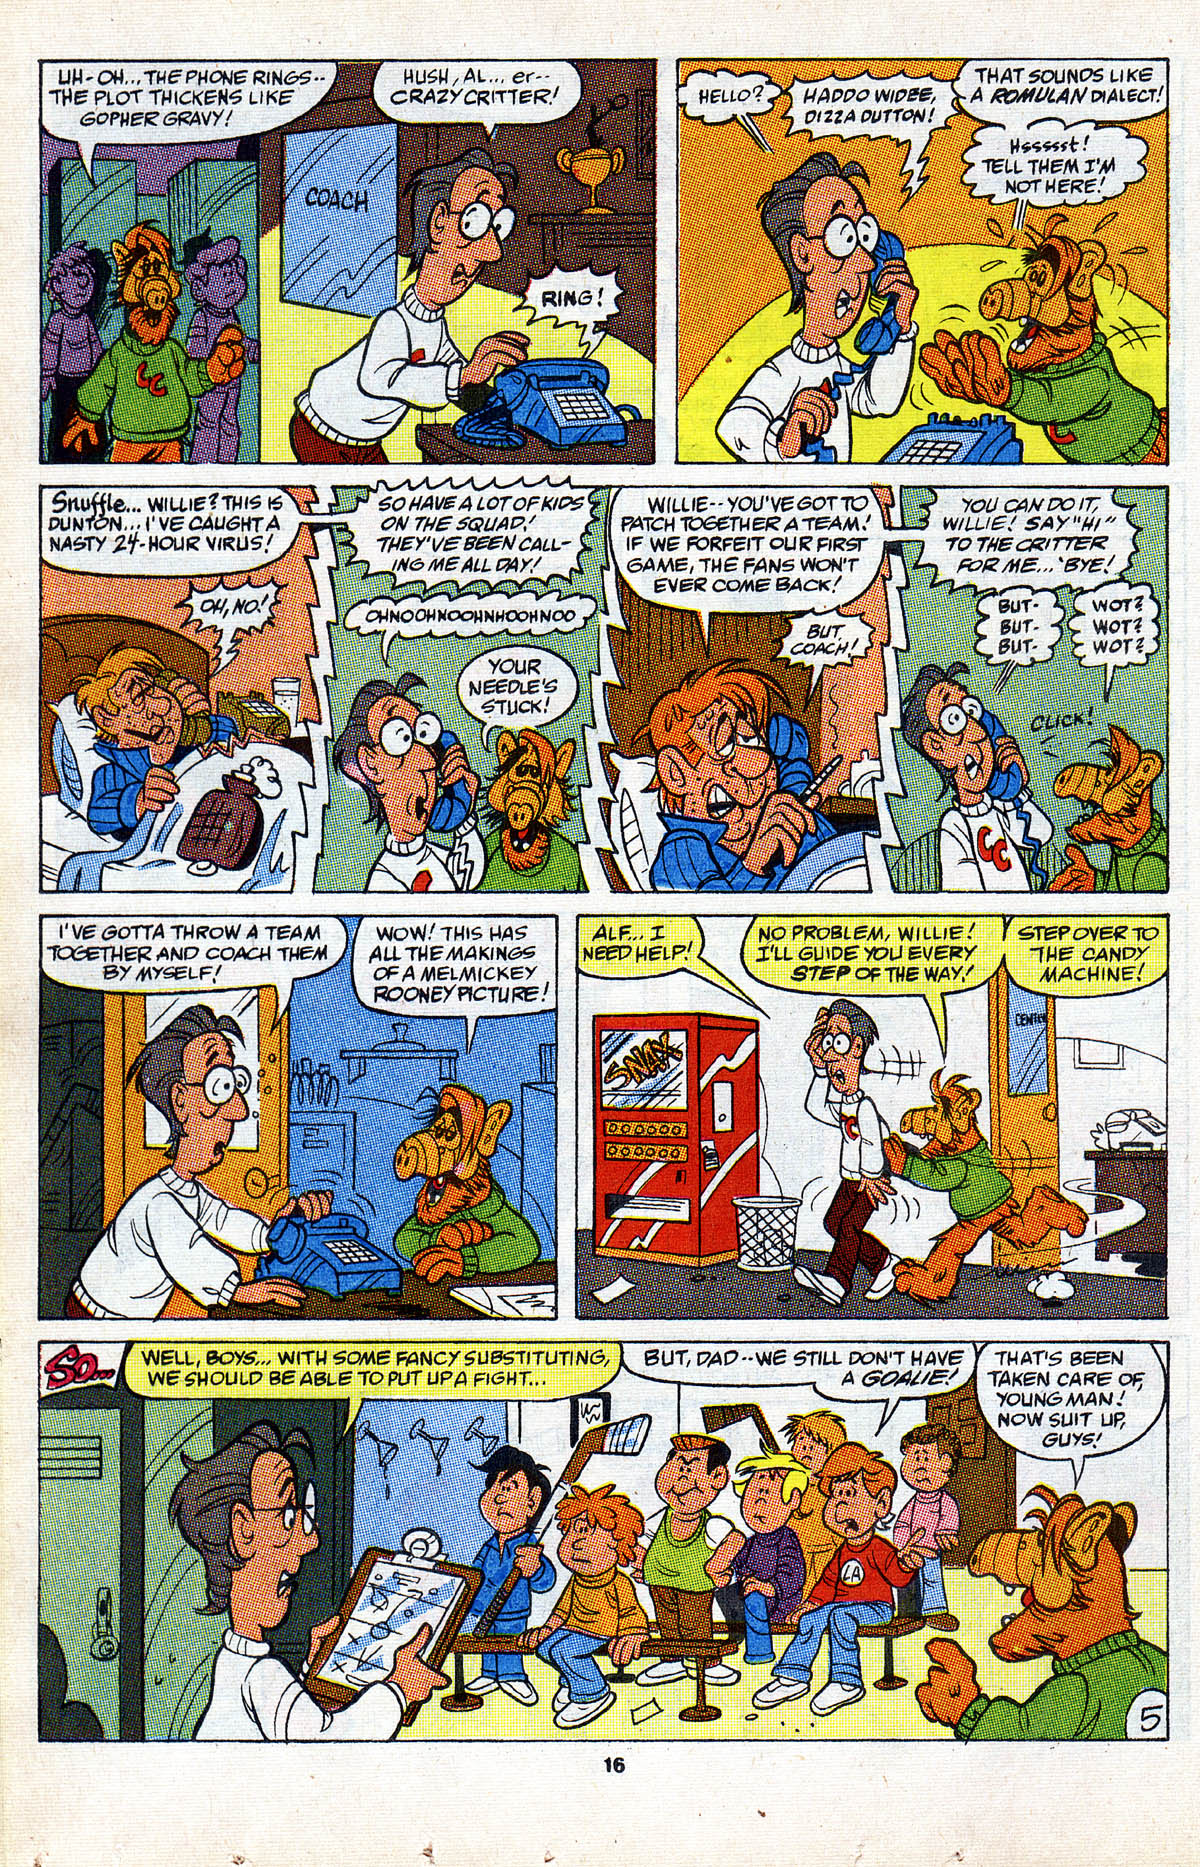 Read online ALF comic -  Issue #2 - 18